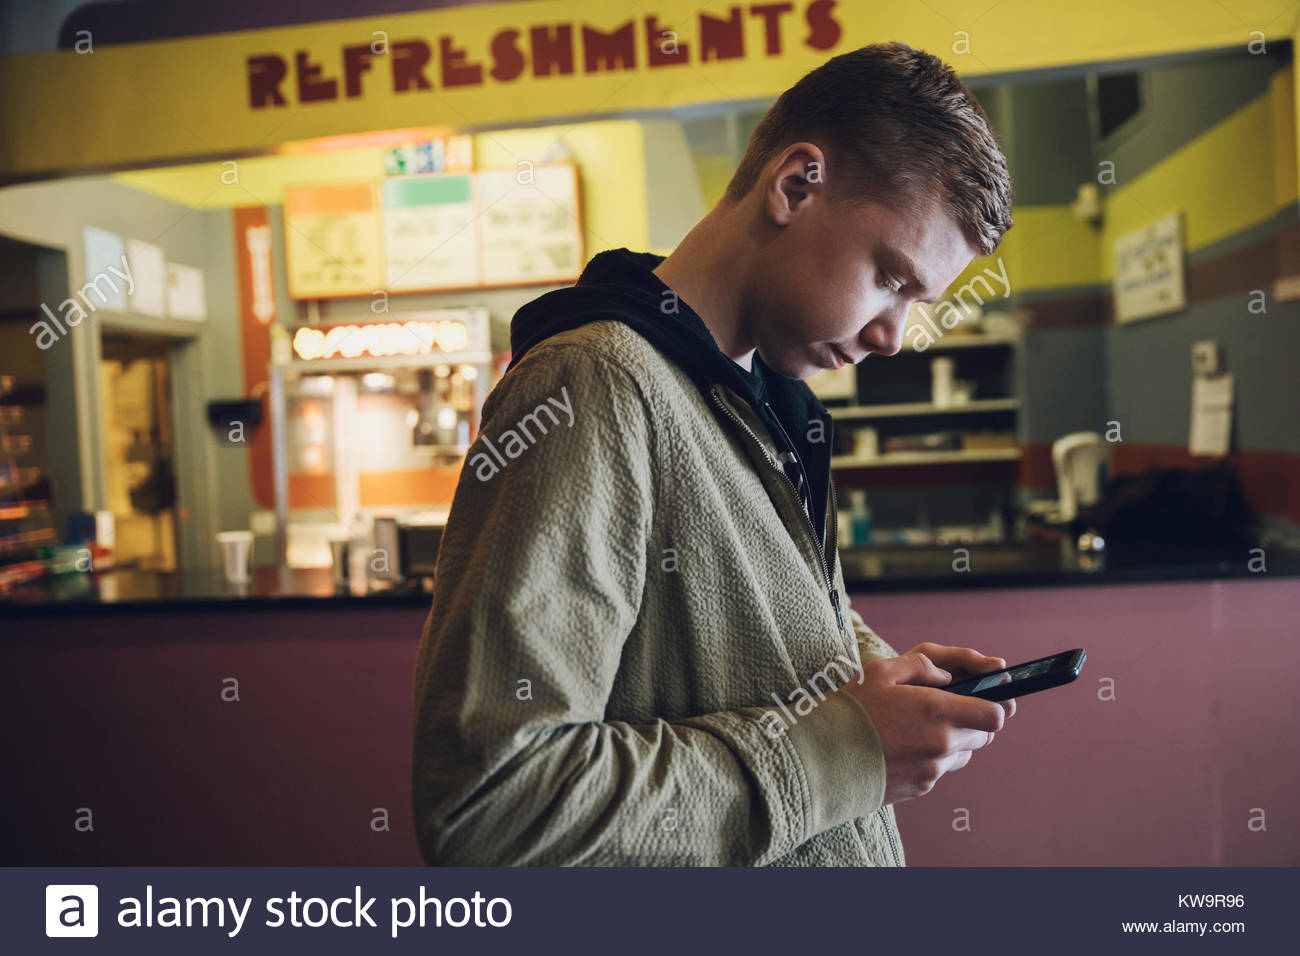 Caucasian tween boy texting with smart phone at refreshments concession stand in movie theater lobby - Stock Image